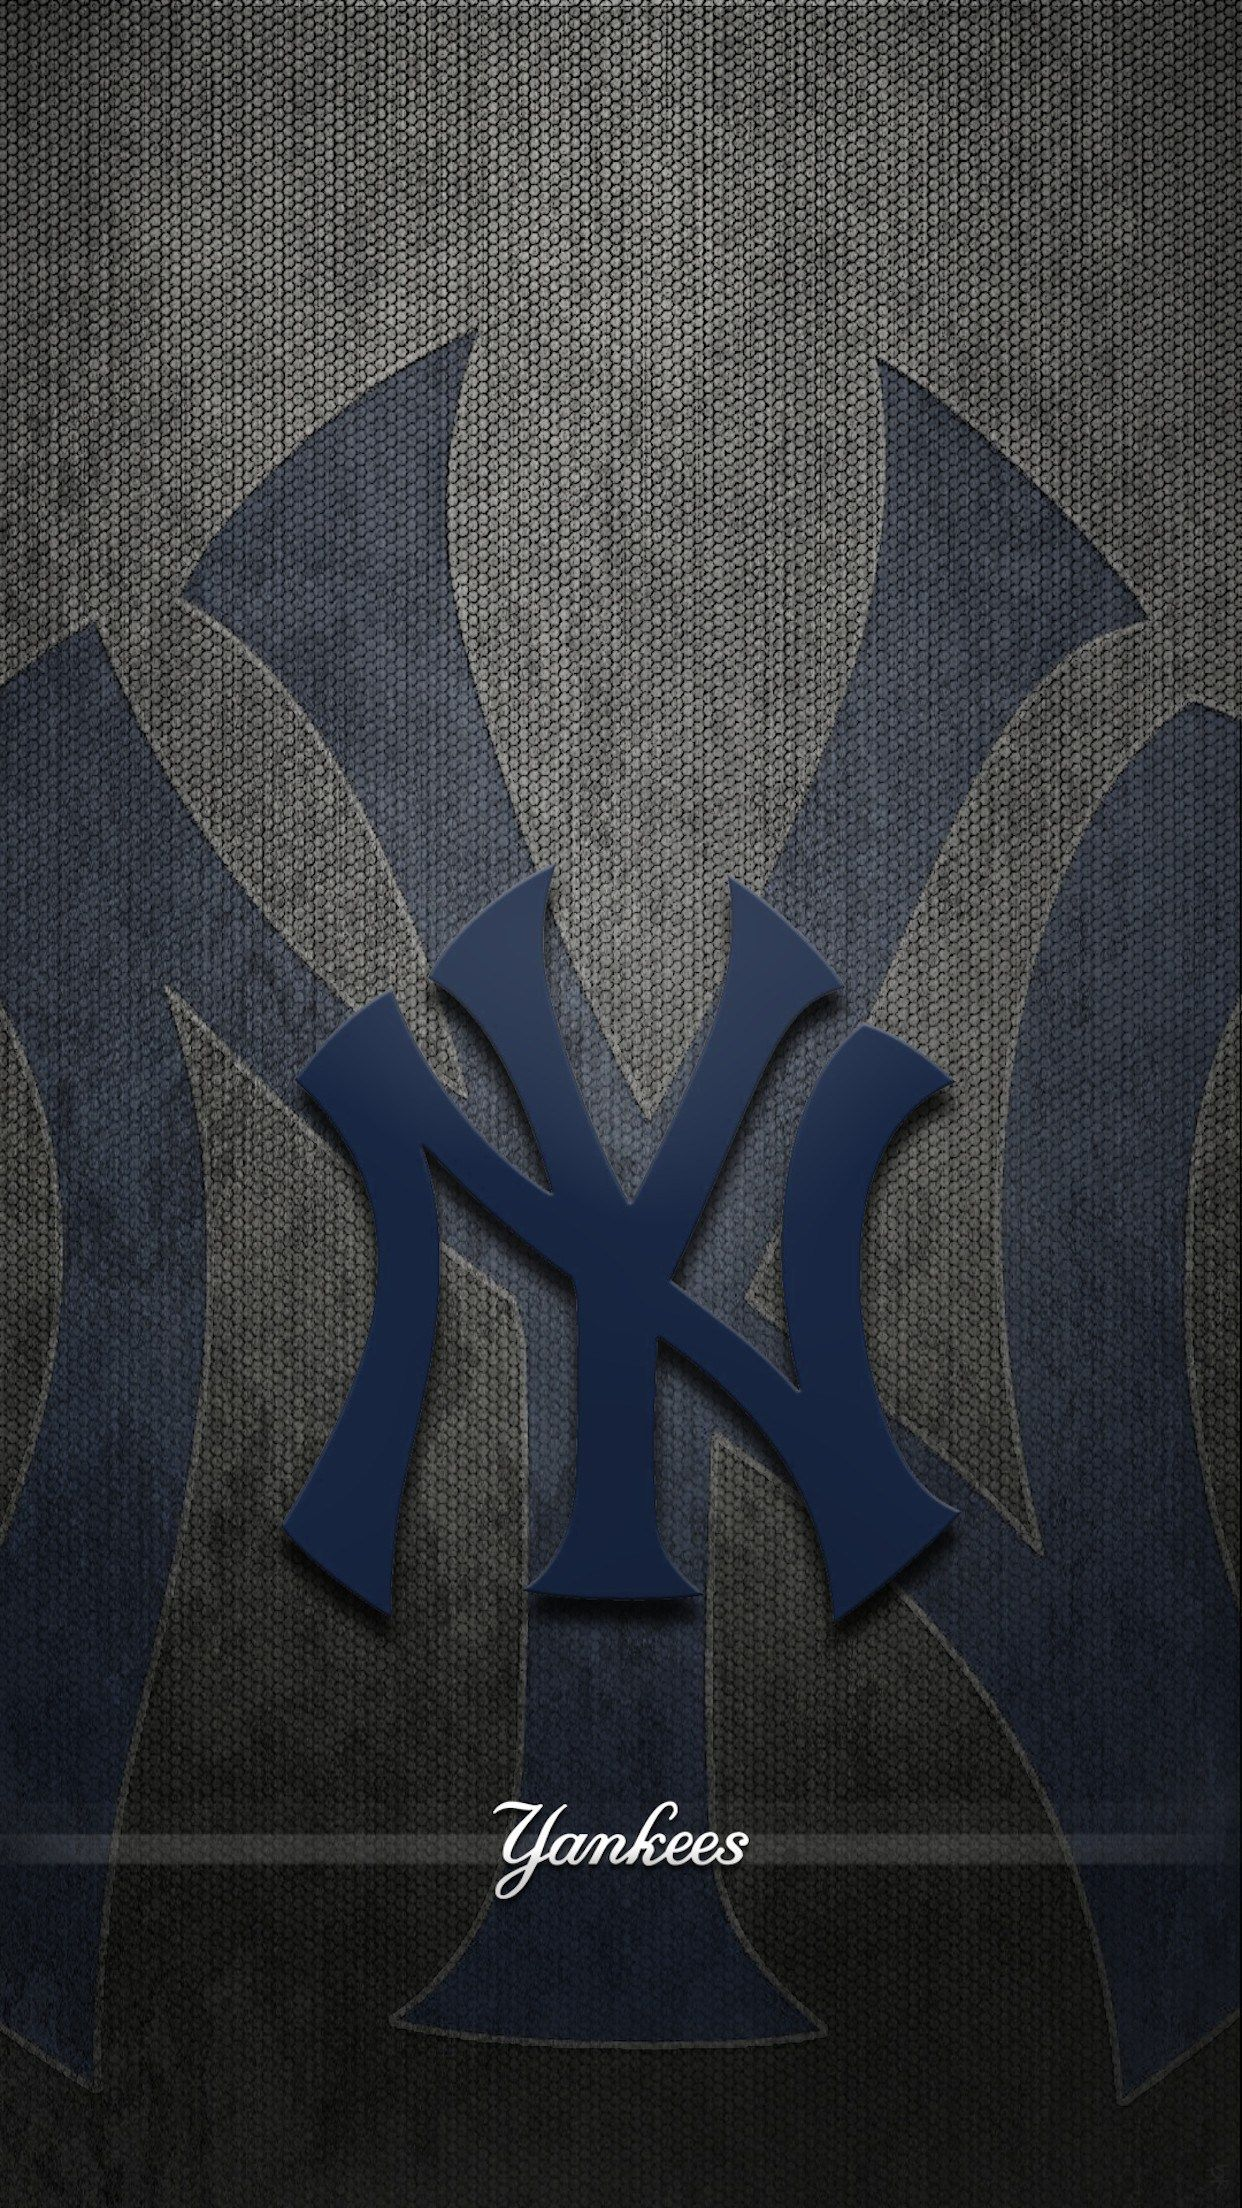 New York Yankees Wallpaper iPhone - Beautiful New York Yankees Wallpaper iPhone, Ny Yankees Logo Wallpapers Wallpaper Cave